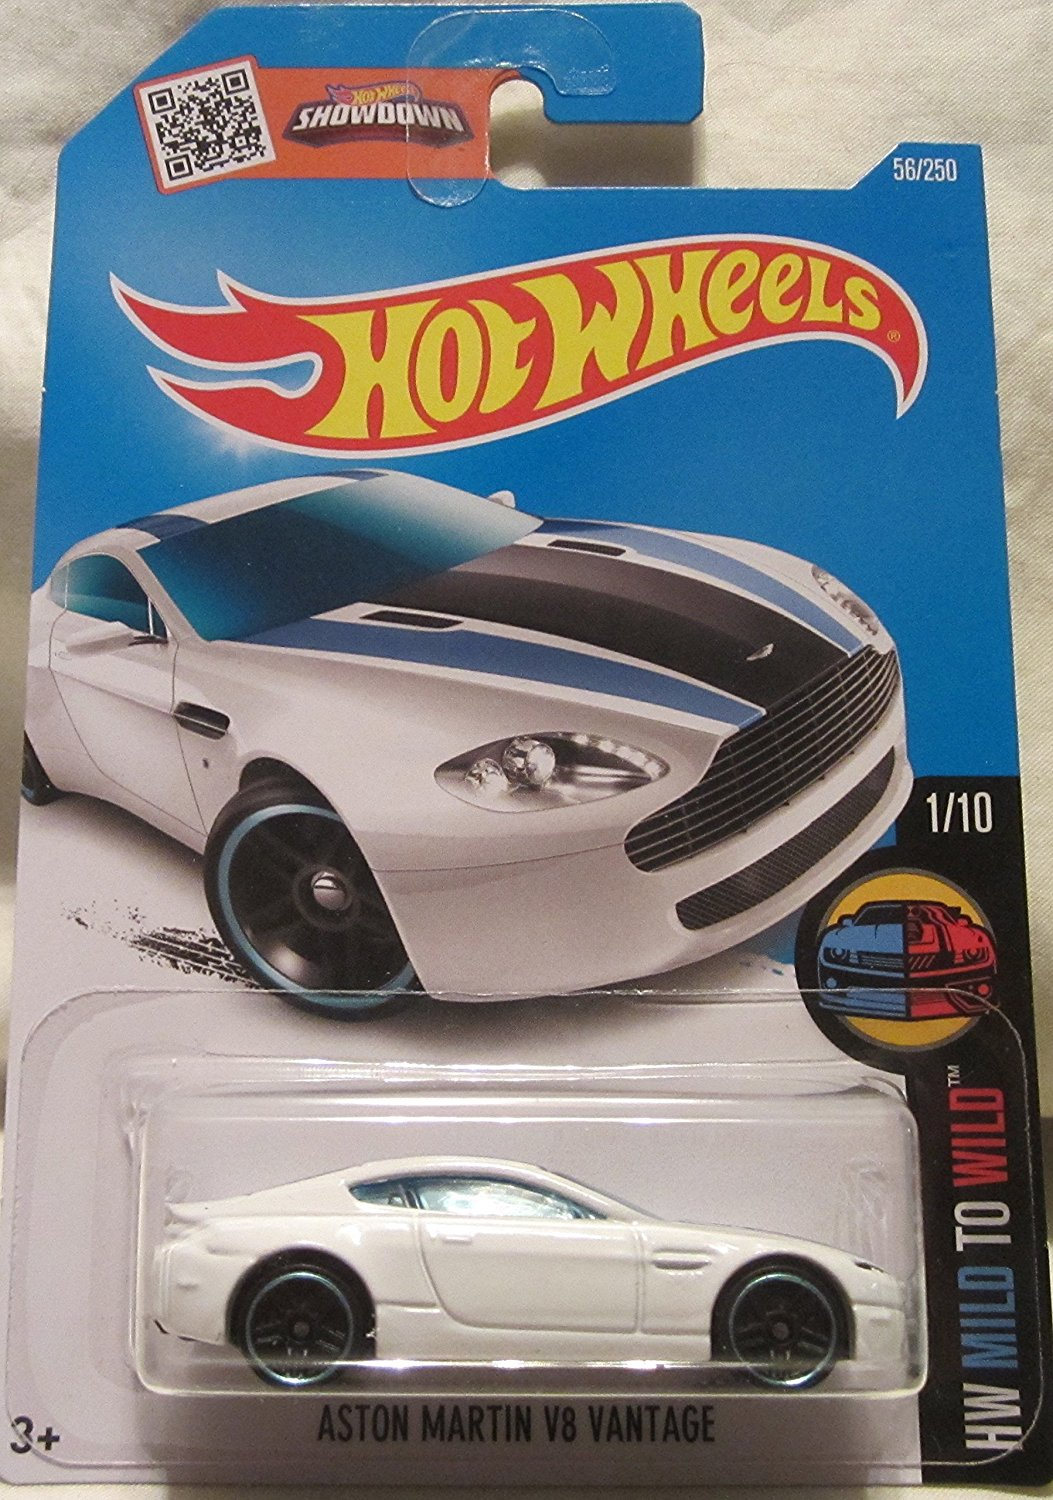 2010 HOT WHEELS, HW RACING 09 10, YELLOW FORD GT LM 157 240 by By Mattel by